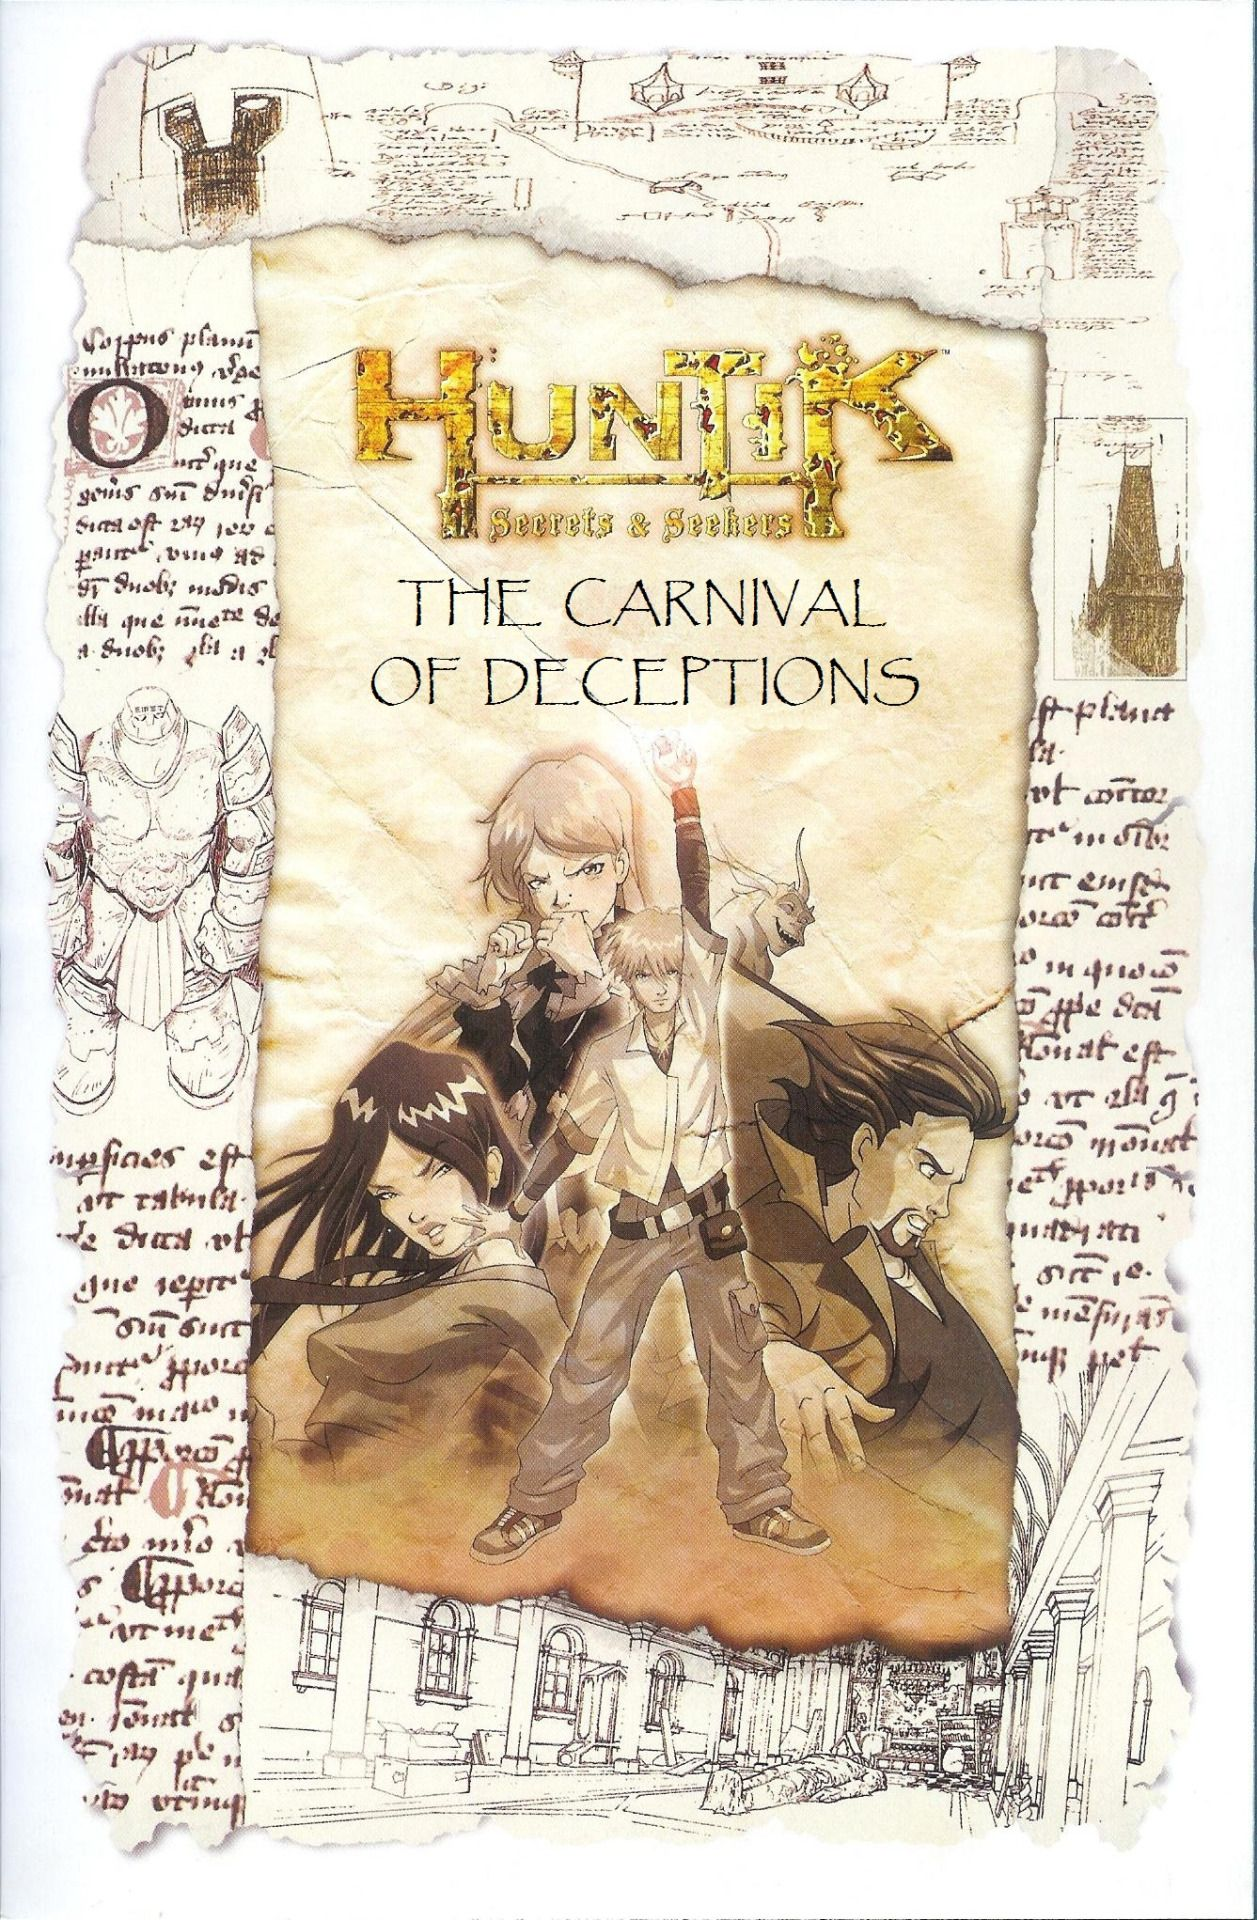 How To Do A Cover Page Title Page Of Huntik Comic #5 The Carnival Of Deceptionsplease .